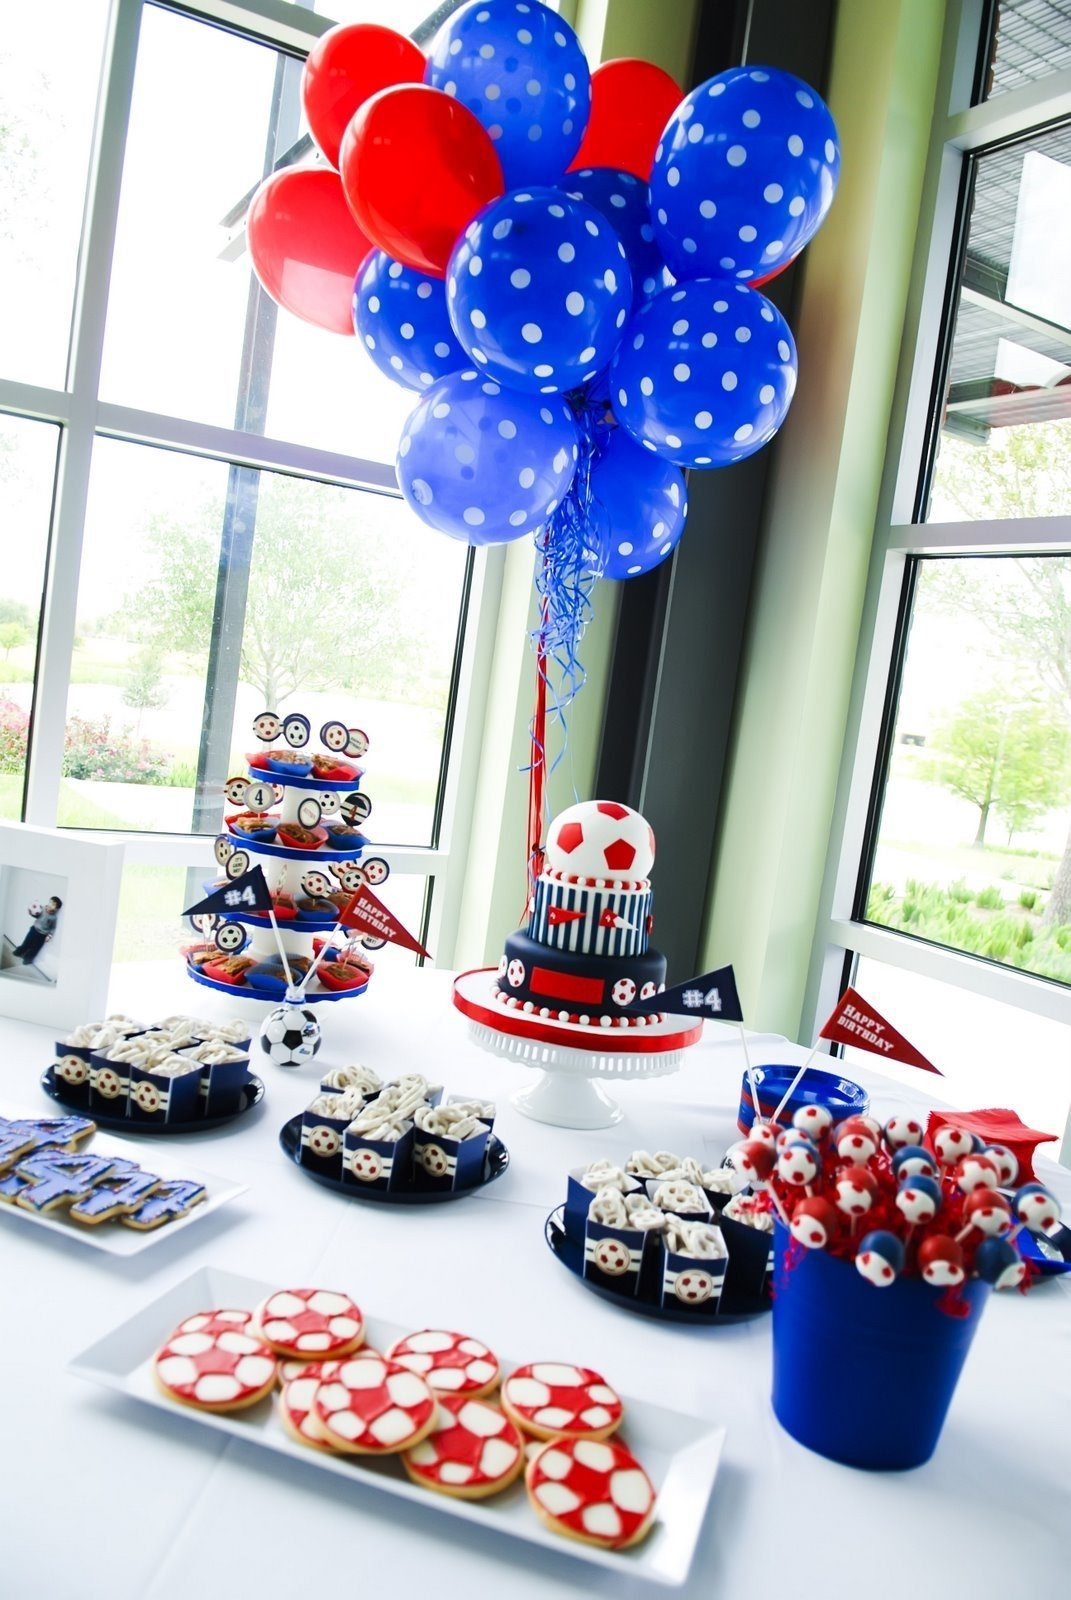 10 Perfect Birthday Party Ideas For Boys Age 10 50 awesome boys birthday party ideas i heart naptime 17 2020